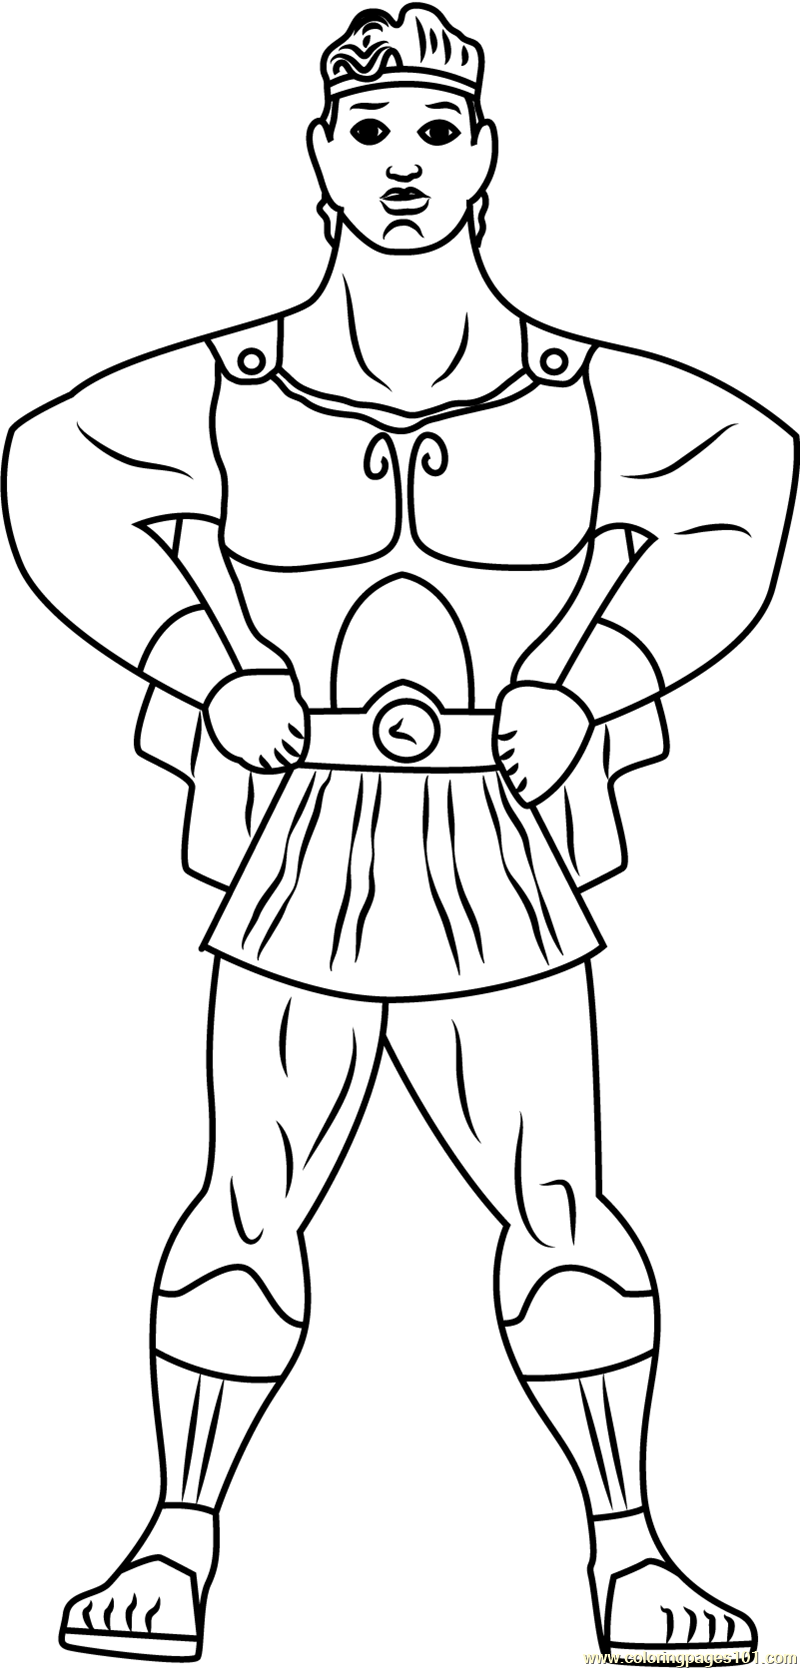 Hercules the Hero Coloring Page - Free Hercules Coloring Pages ...